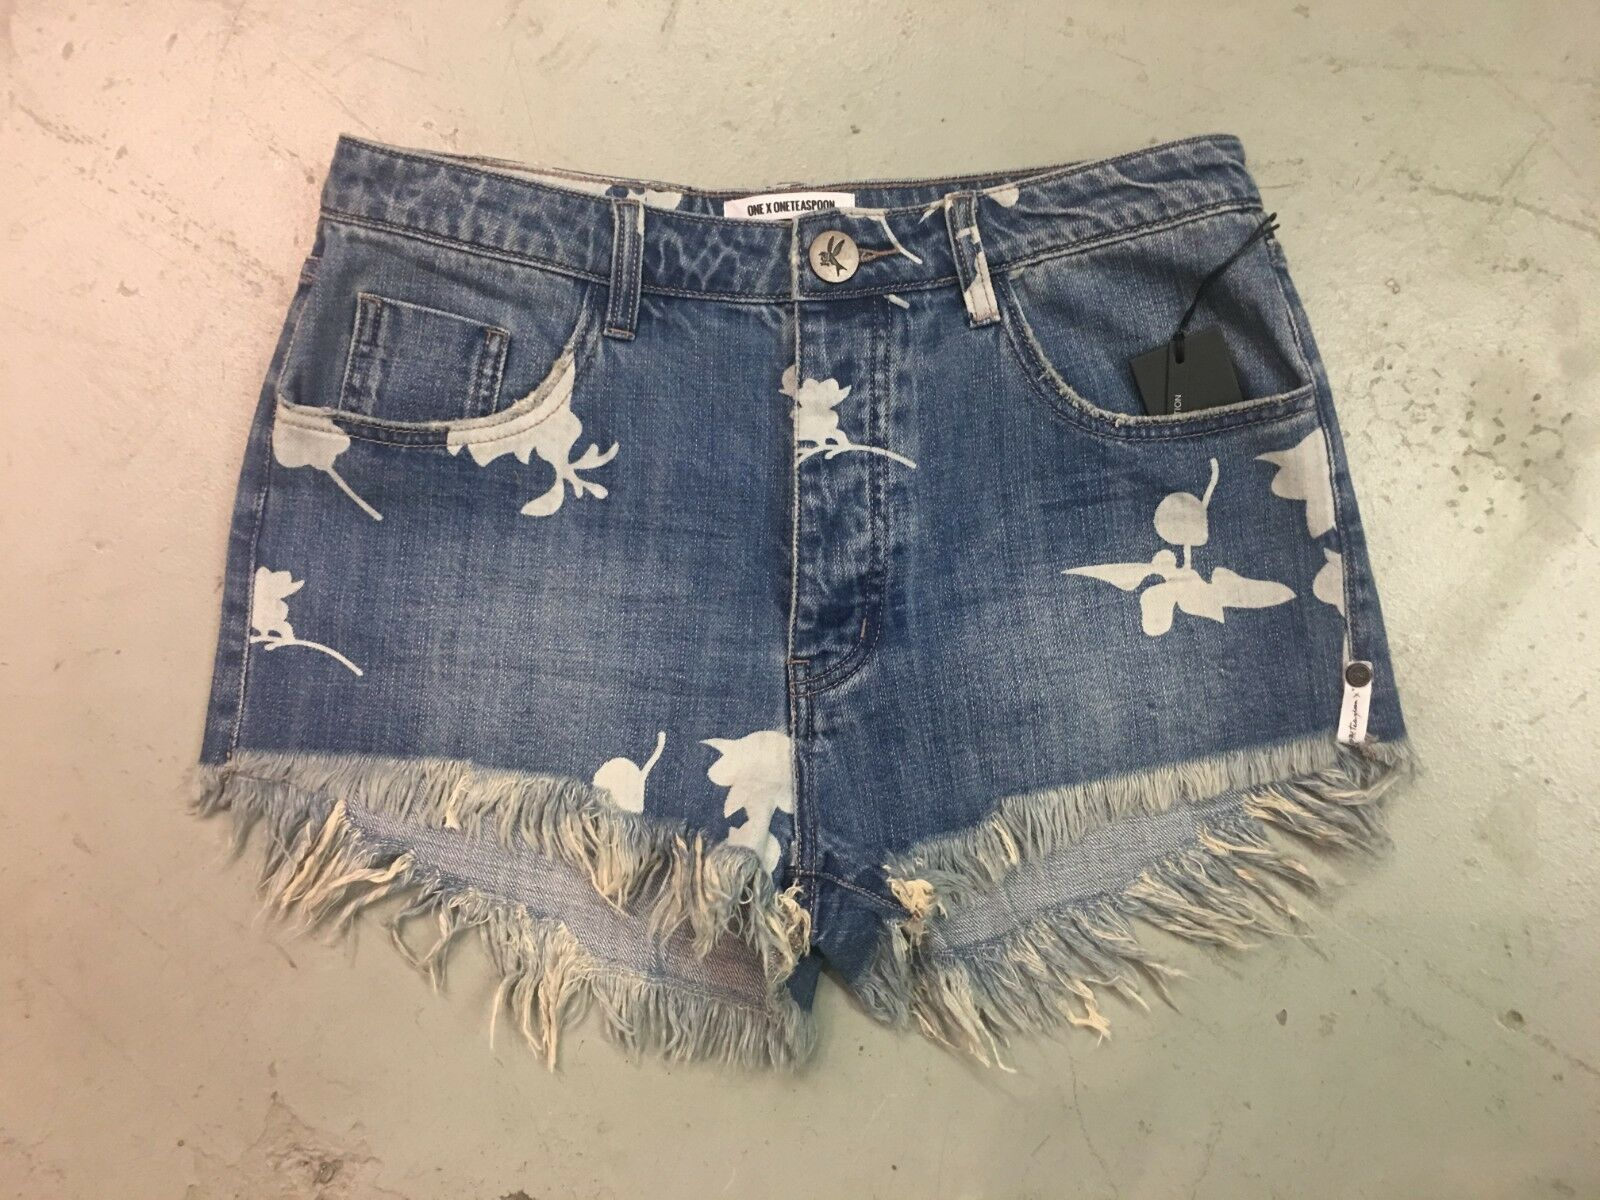 NWT ONE TEASPOON WOMEN'S OUTLAWS MID LENGTH DENIM SHORTS IN PACIFICA SIZE 26